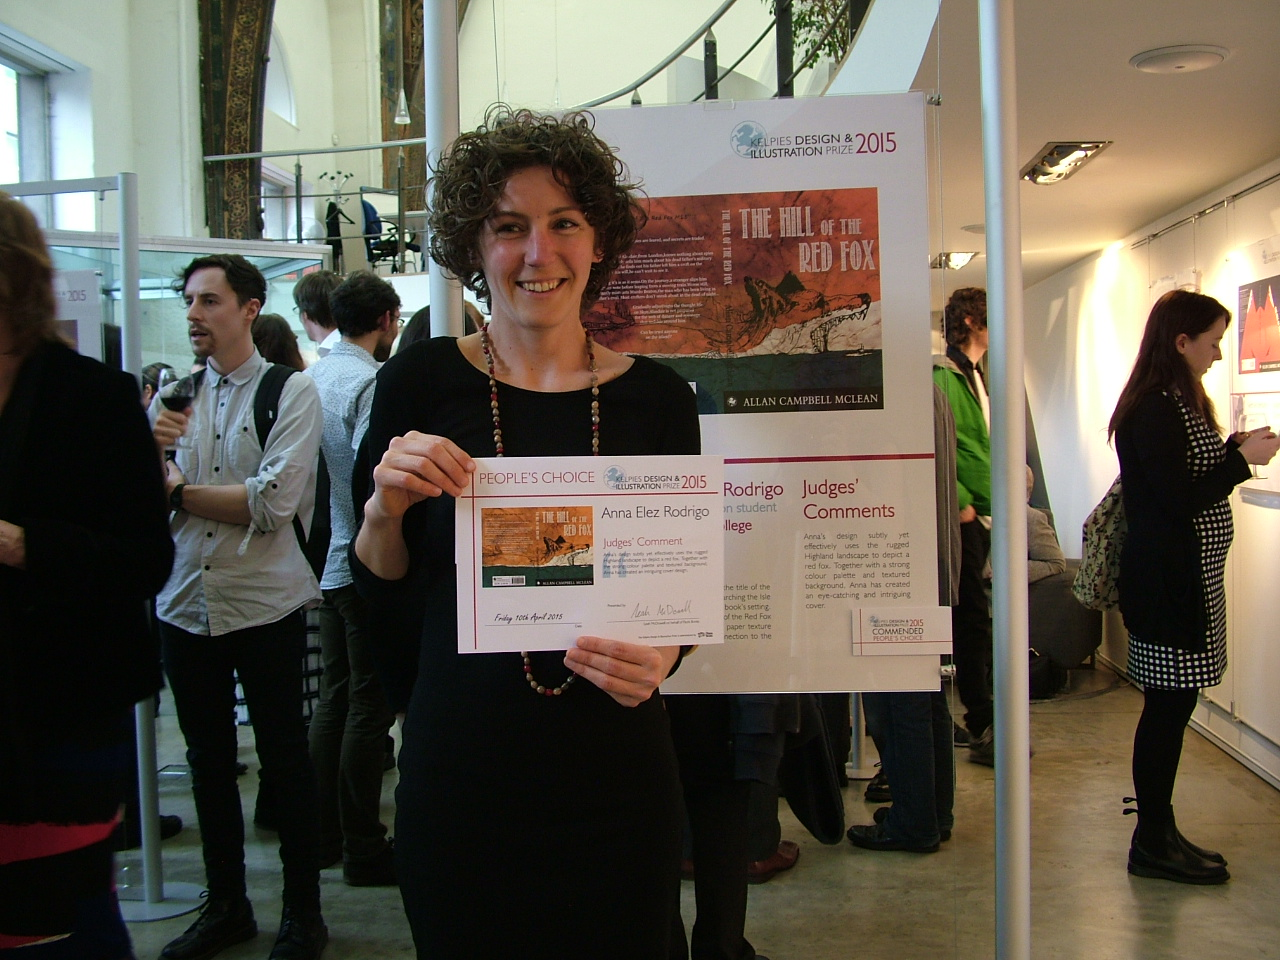 Edinburgh College Student Anna Elez Rodrigo celebrates her People's Choice award at Creative Exchange.